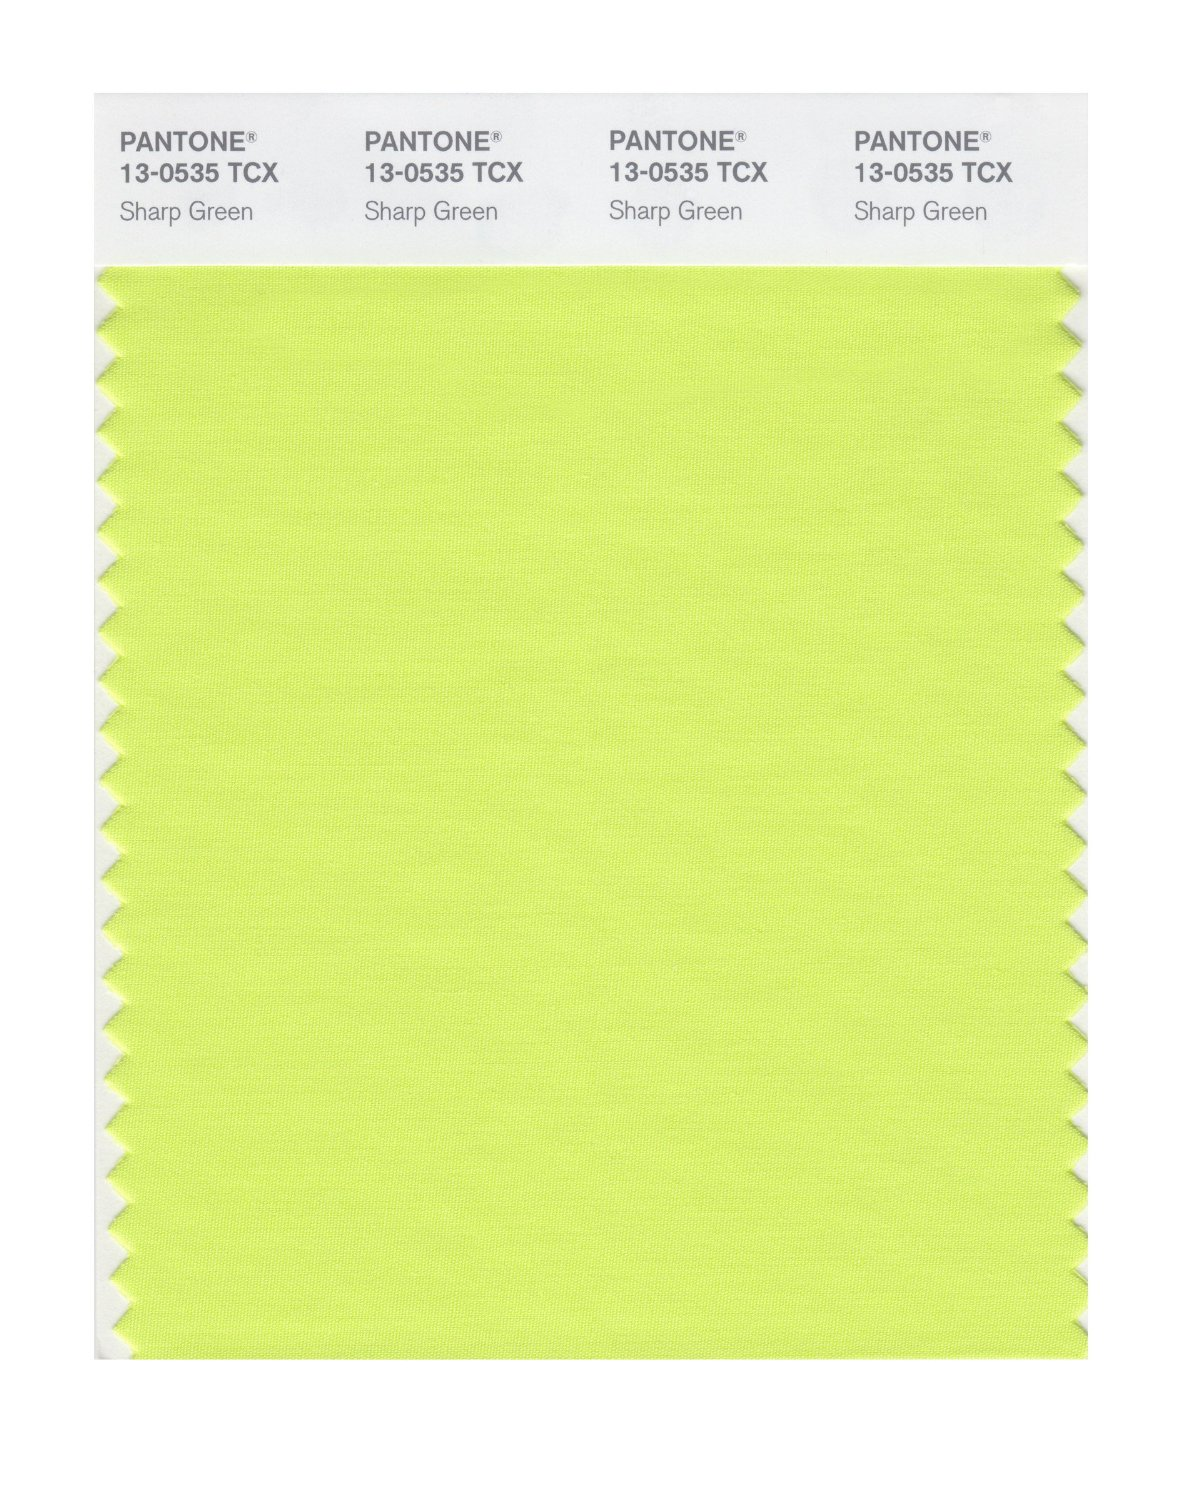 Pantone Smart Swatch 13-0535 Sharp Green